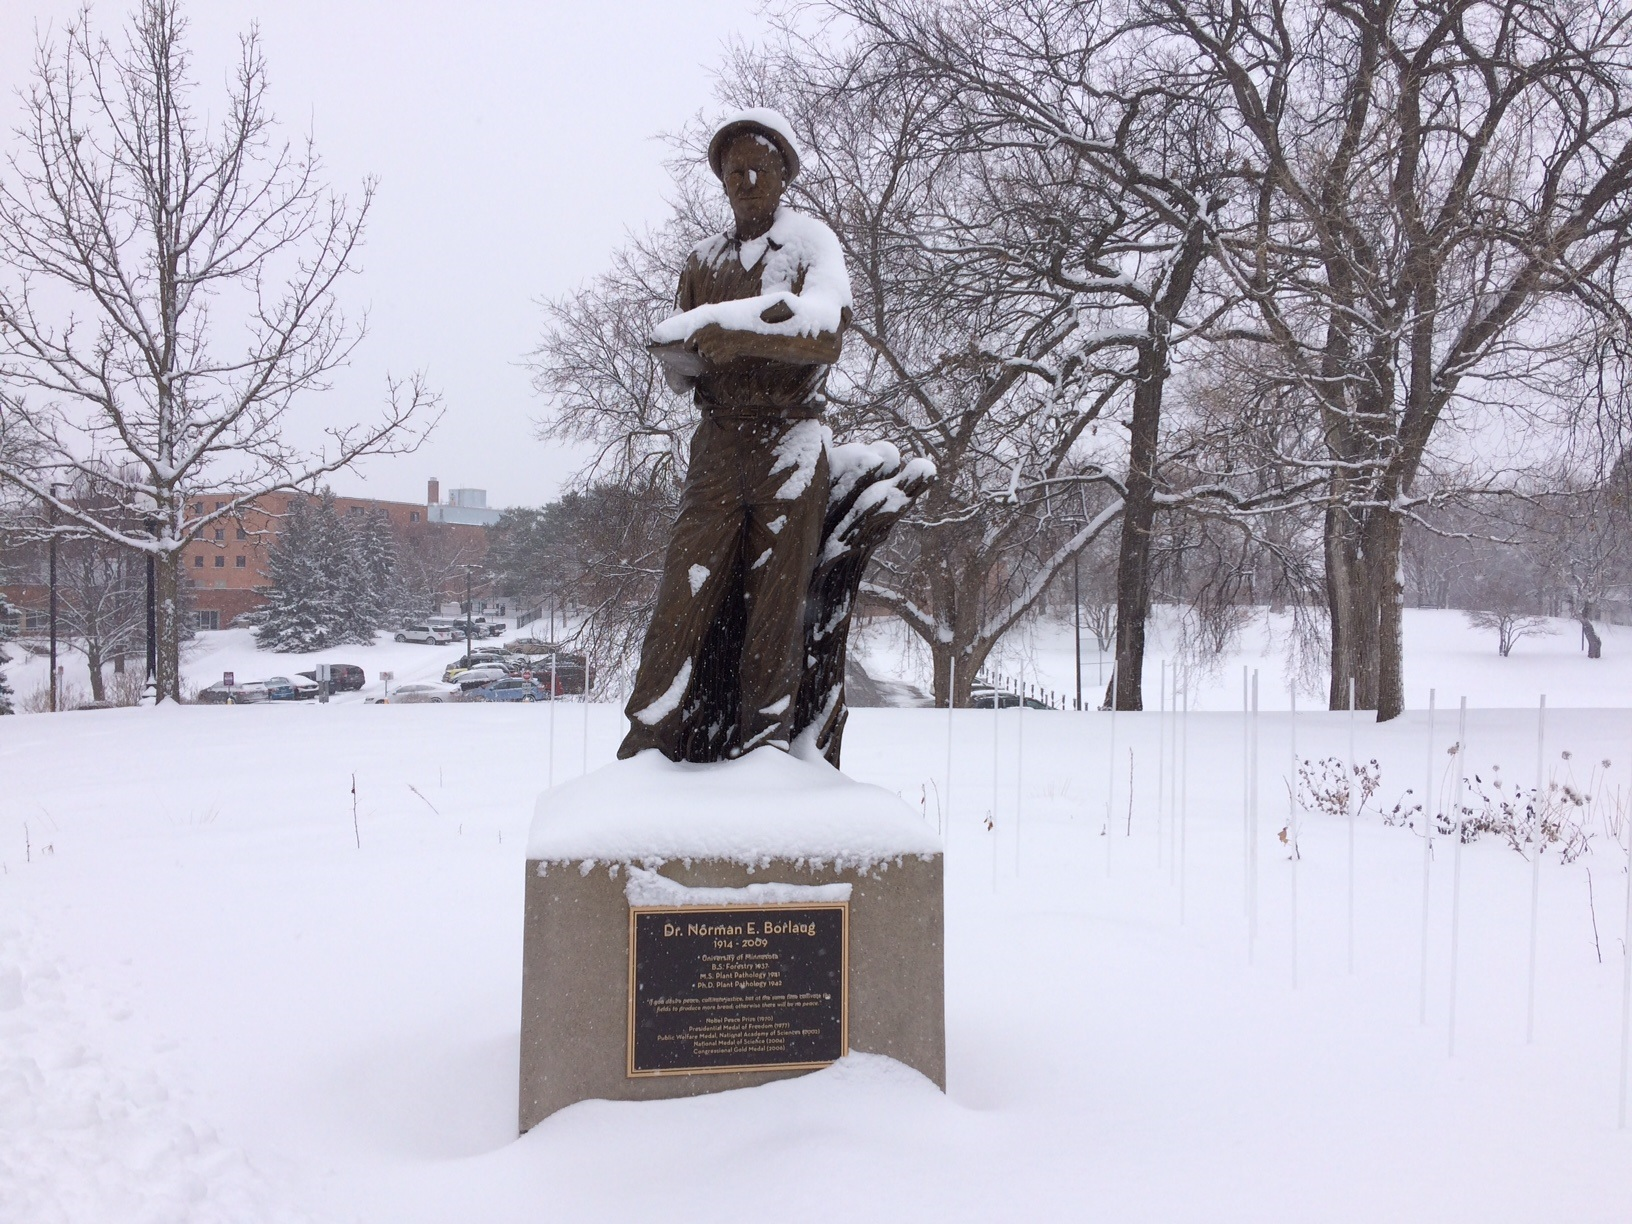 Snowfall on April 2, 2018 at the U of M St. Paul Campus